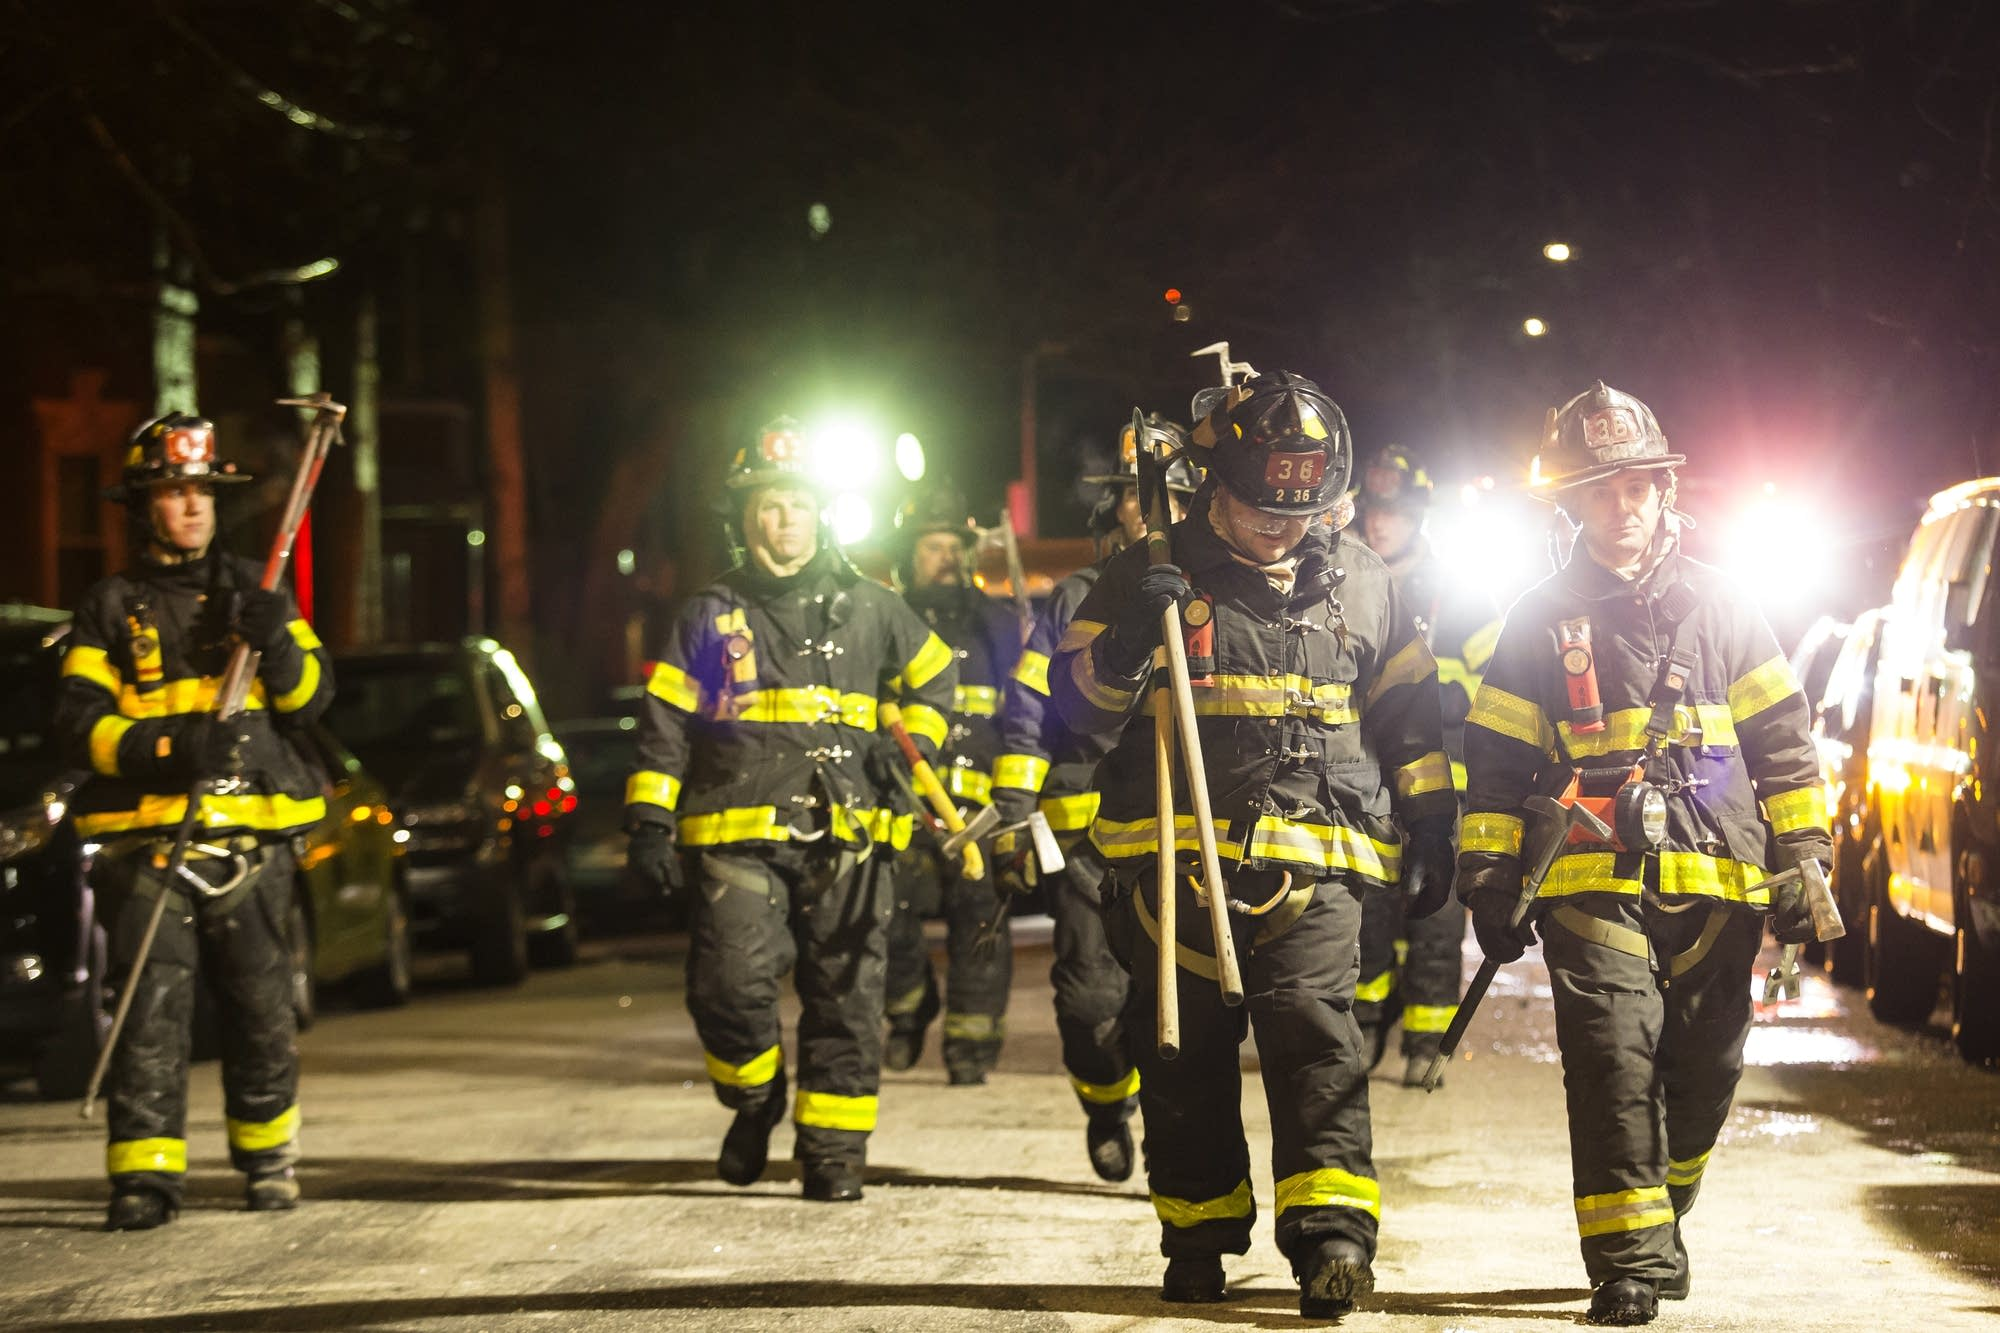 Firefighters leave after putting out a major house fire